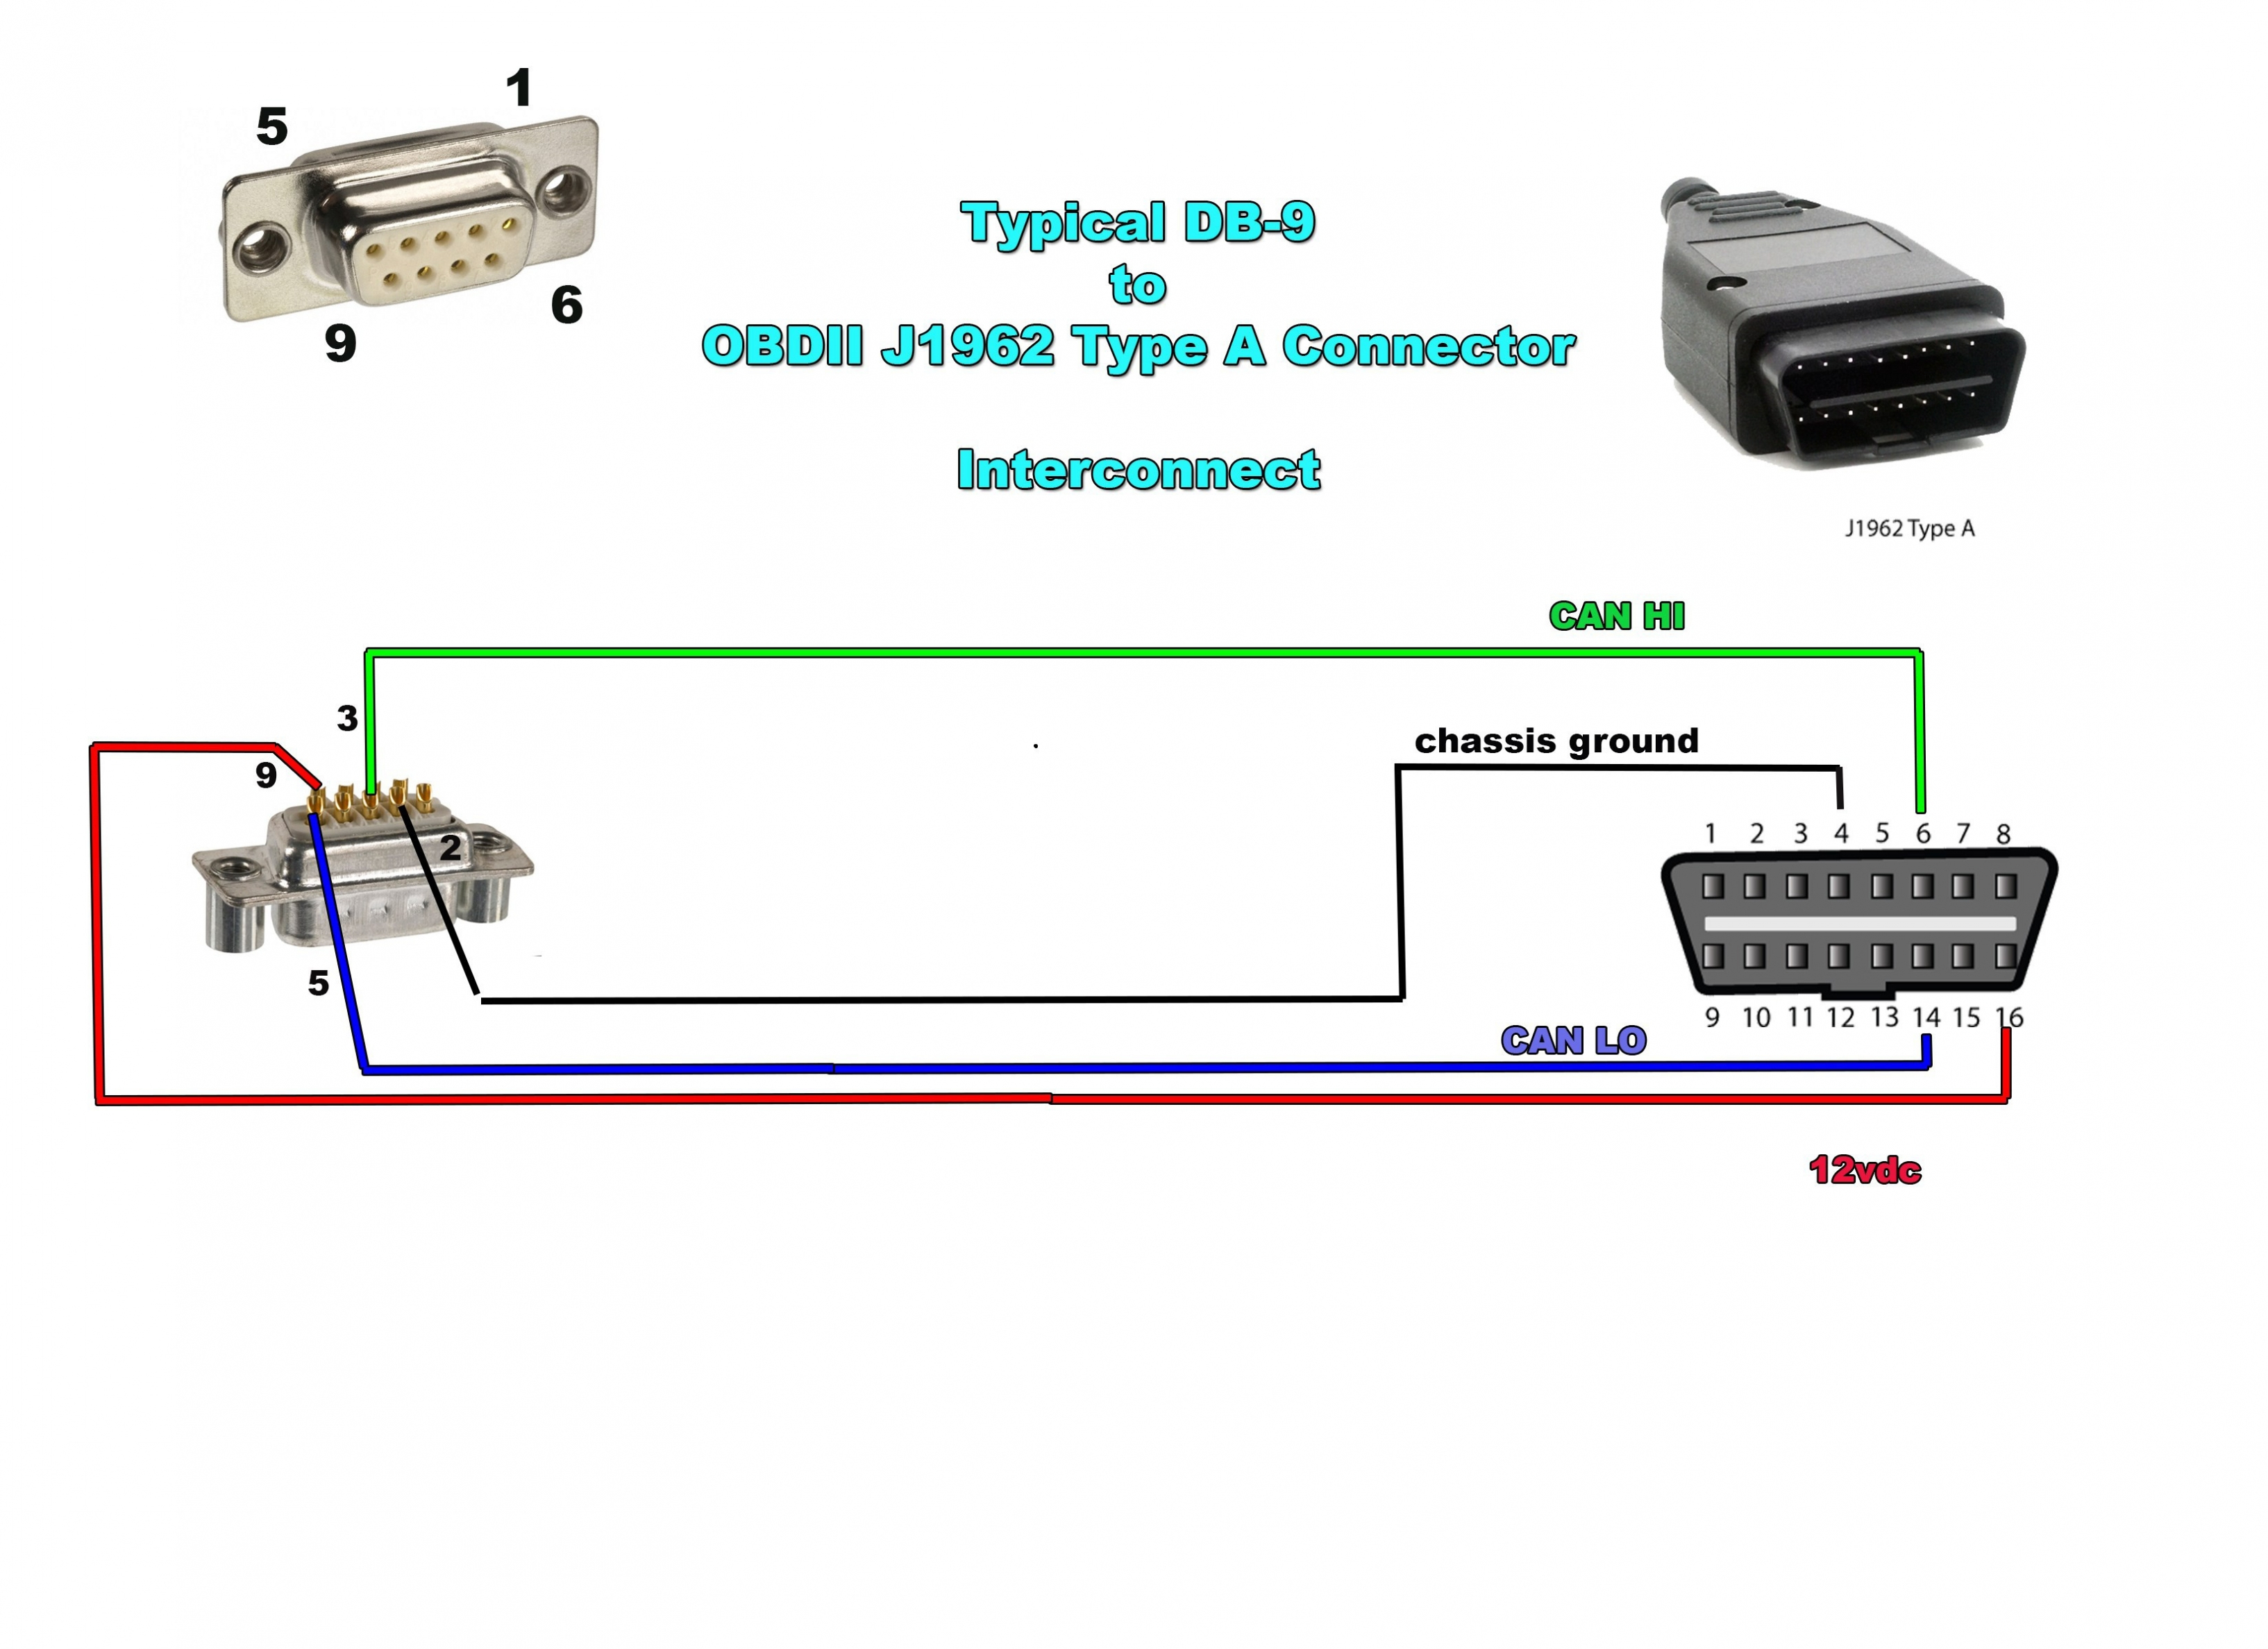 Usb Cable Wiring Diagram – Famous Usb Type A Wiring Diagram Motif - Wiring Diagram Of A Usb Cable